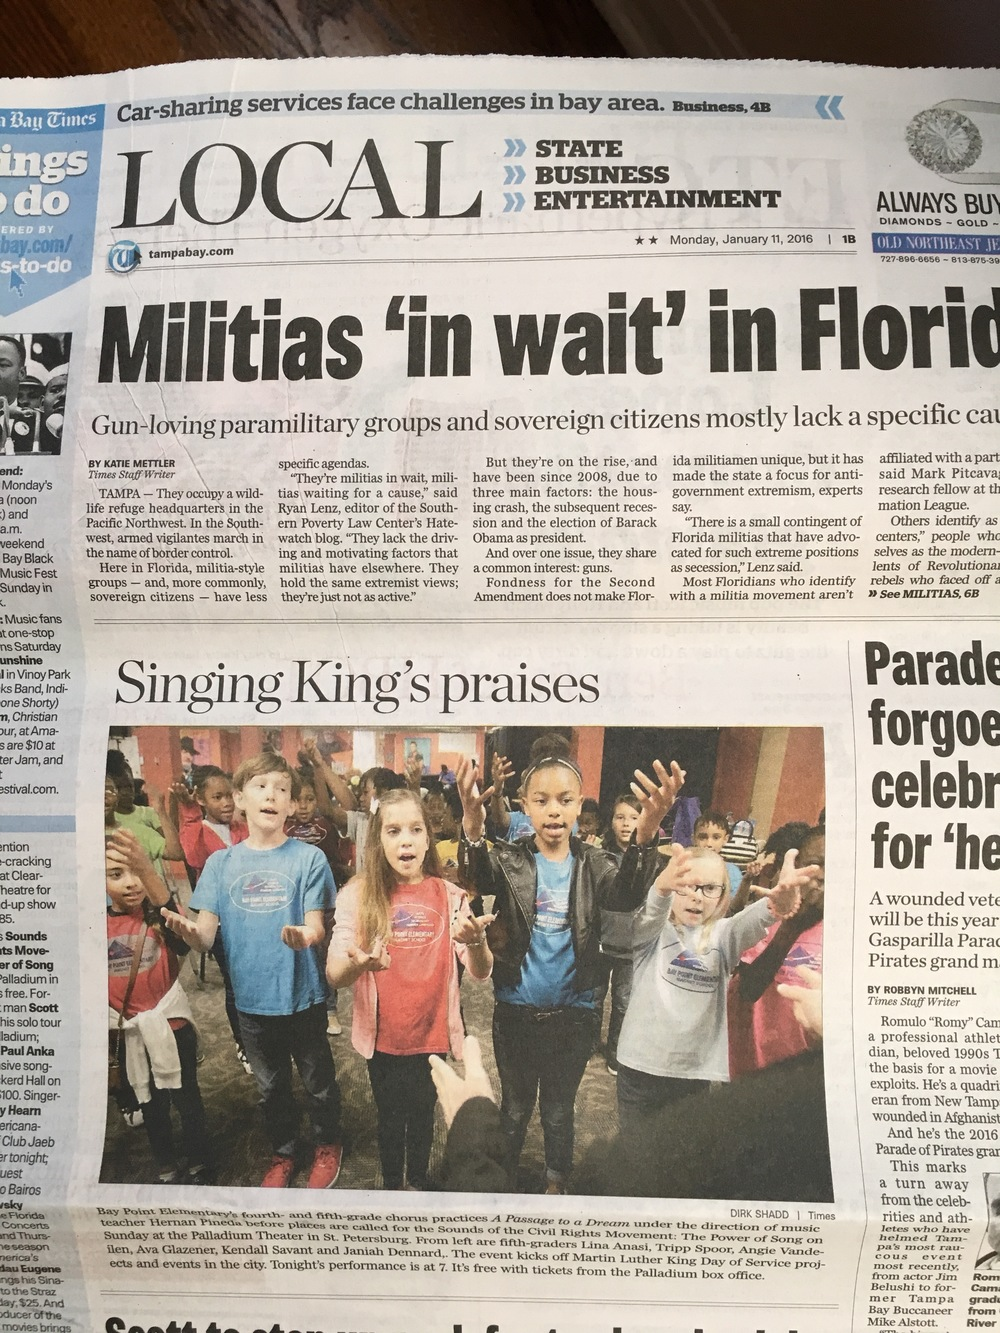 Students from Bay Point Elementary joined the cast of Sounds of the Civil Rights Movement: The Power of Song 2016 and were featured in this photograph in the Tampa Bay Times. The photo shows the students at The Palladium Theater where the performances were held.